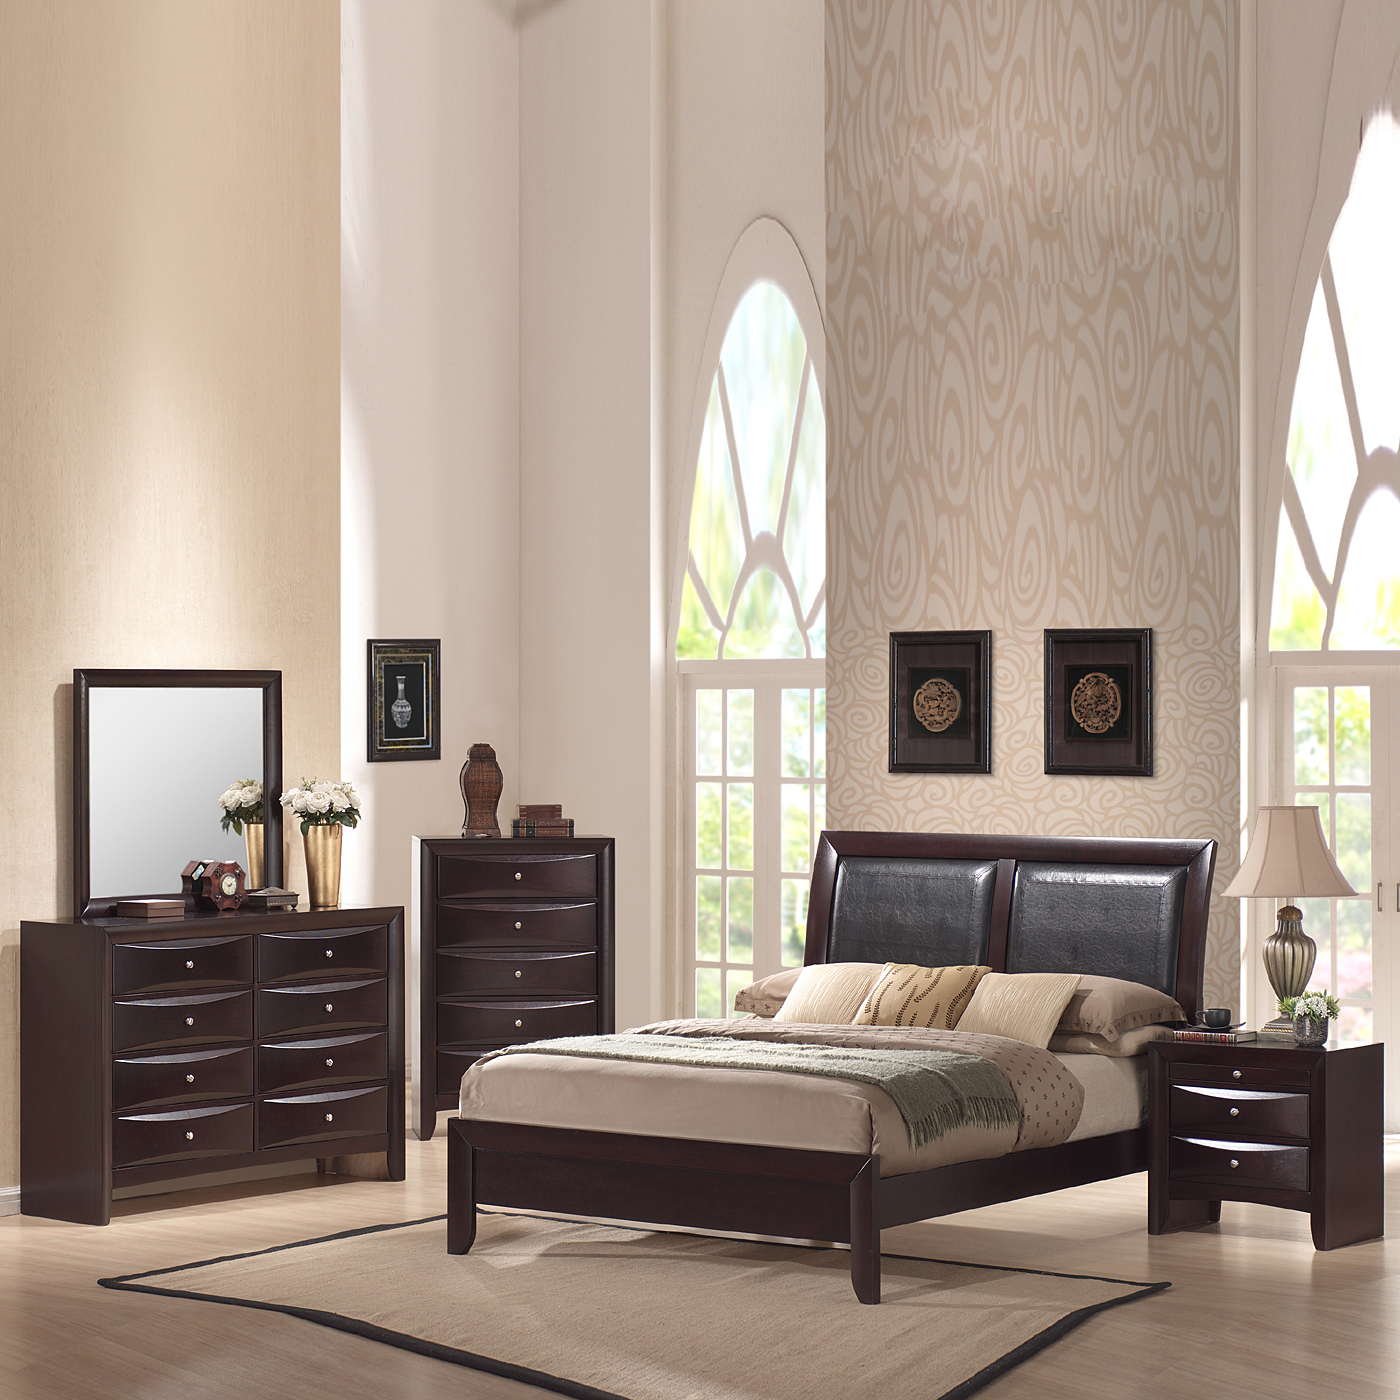 Emily Bed Room Suite